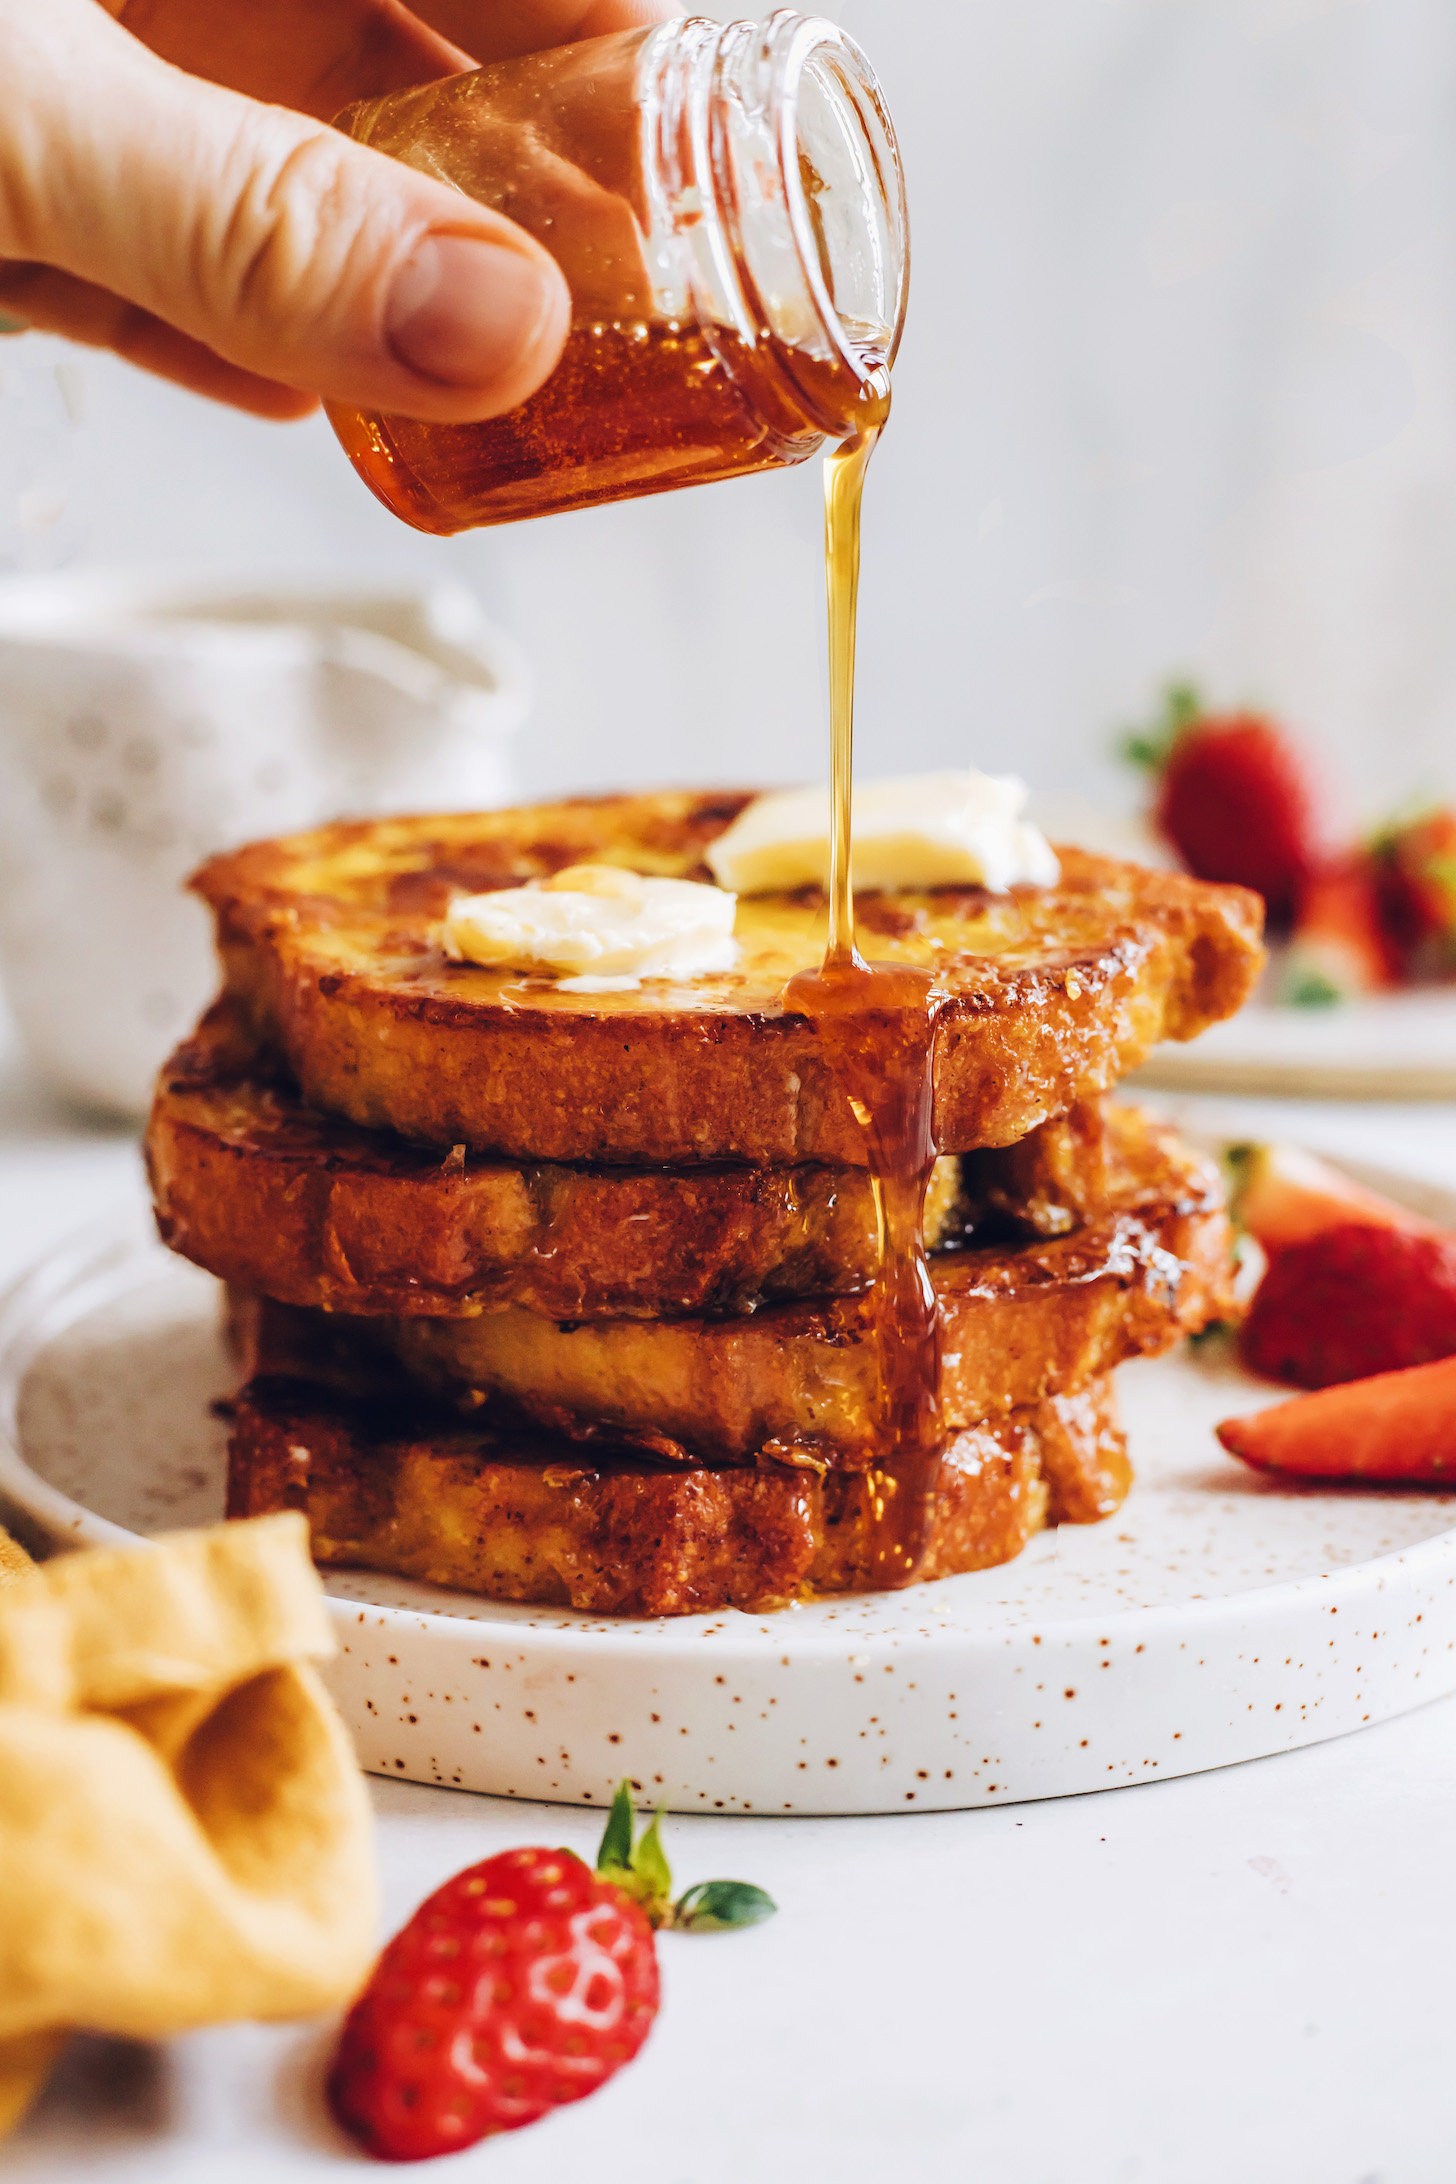 Maple syrup being drizzled over vegan French toast